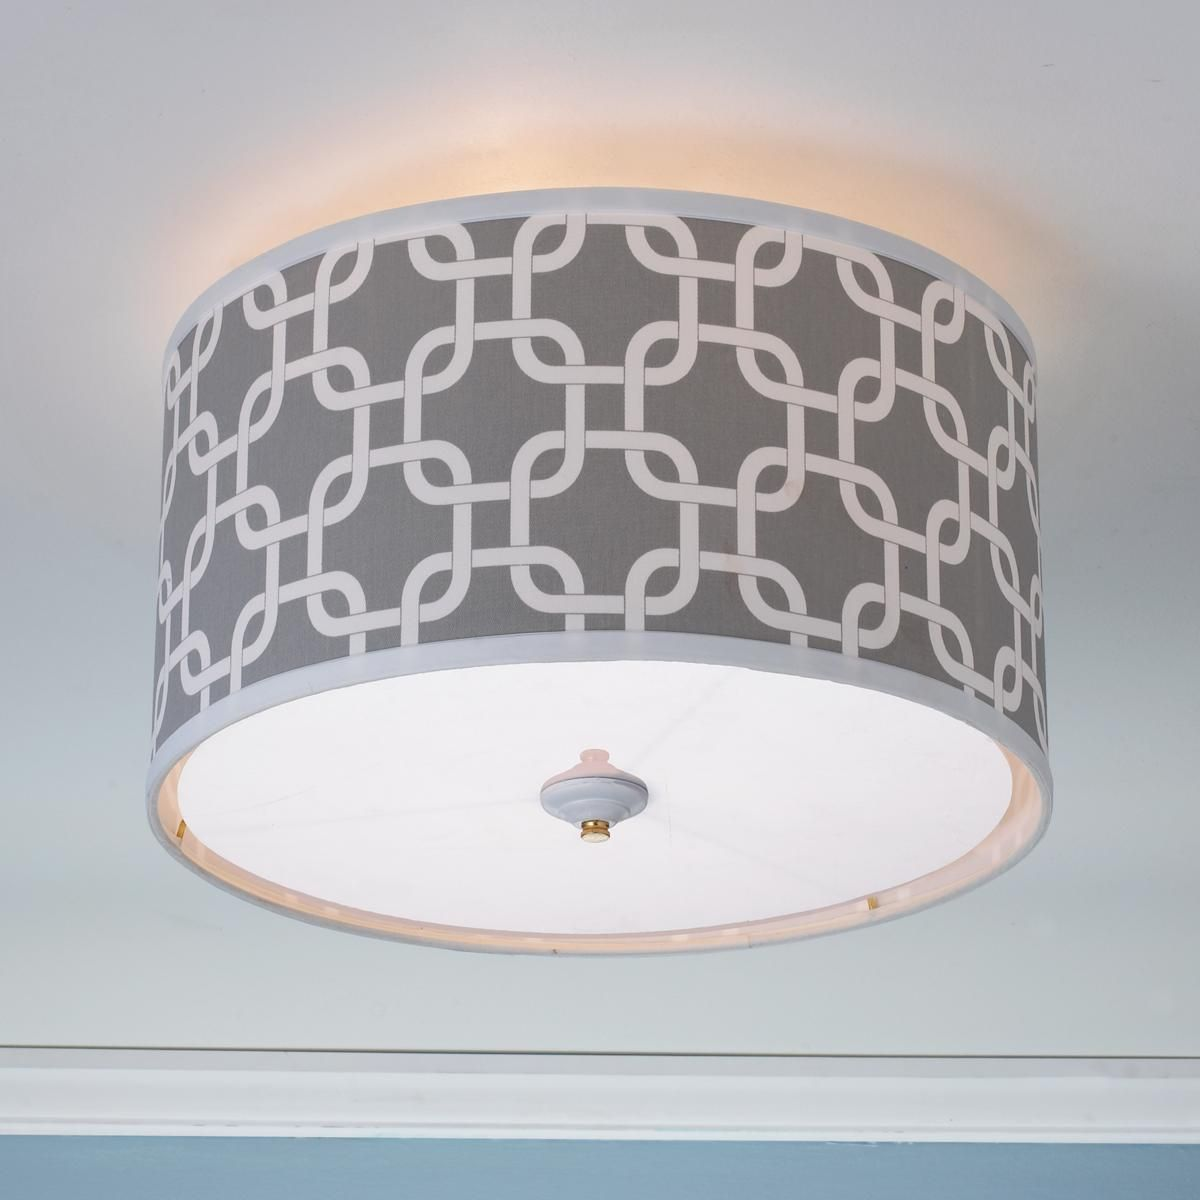 Large Drum Ceiling Fan: Geometric Fretwork Drum Shade Ceiling Light